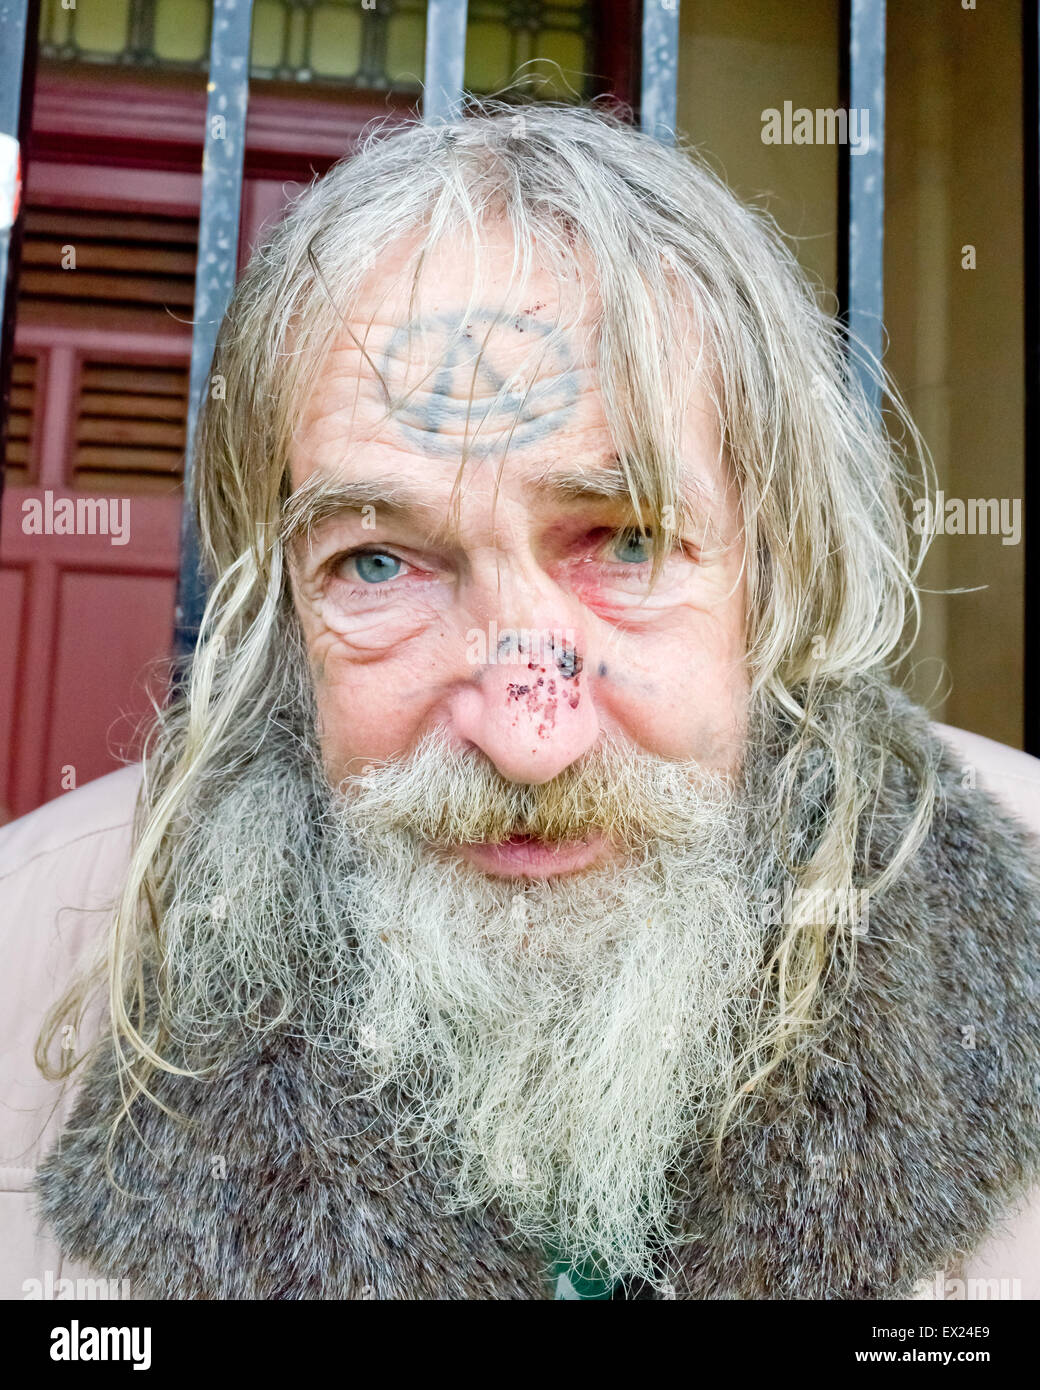 homeless man with broken nose and tattoo on face with a for anarchy